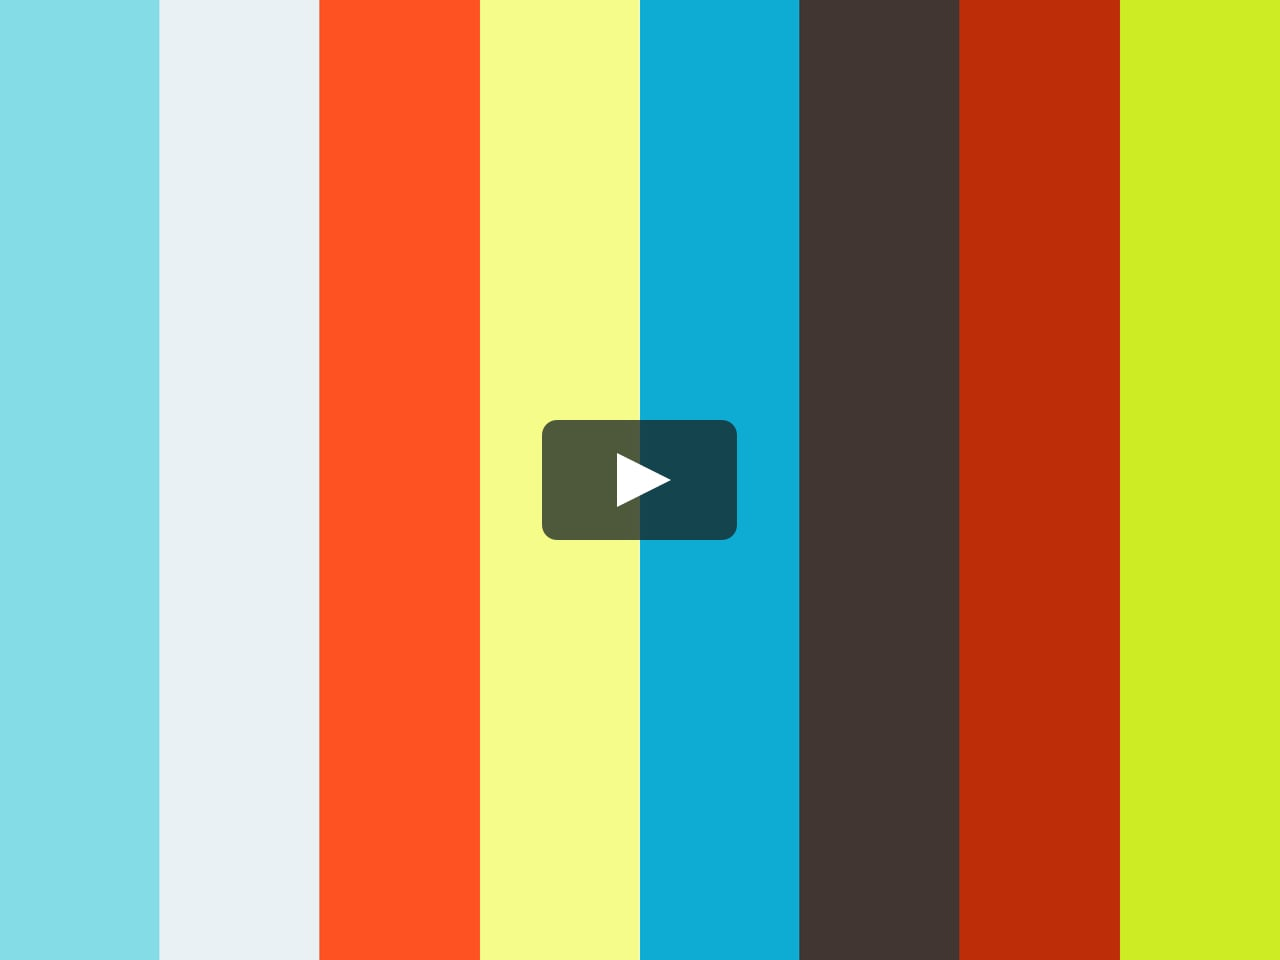 Jeep Wrangler repair manual 2007 2008 2009 2010 on Vimeo